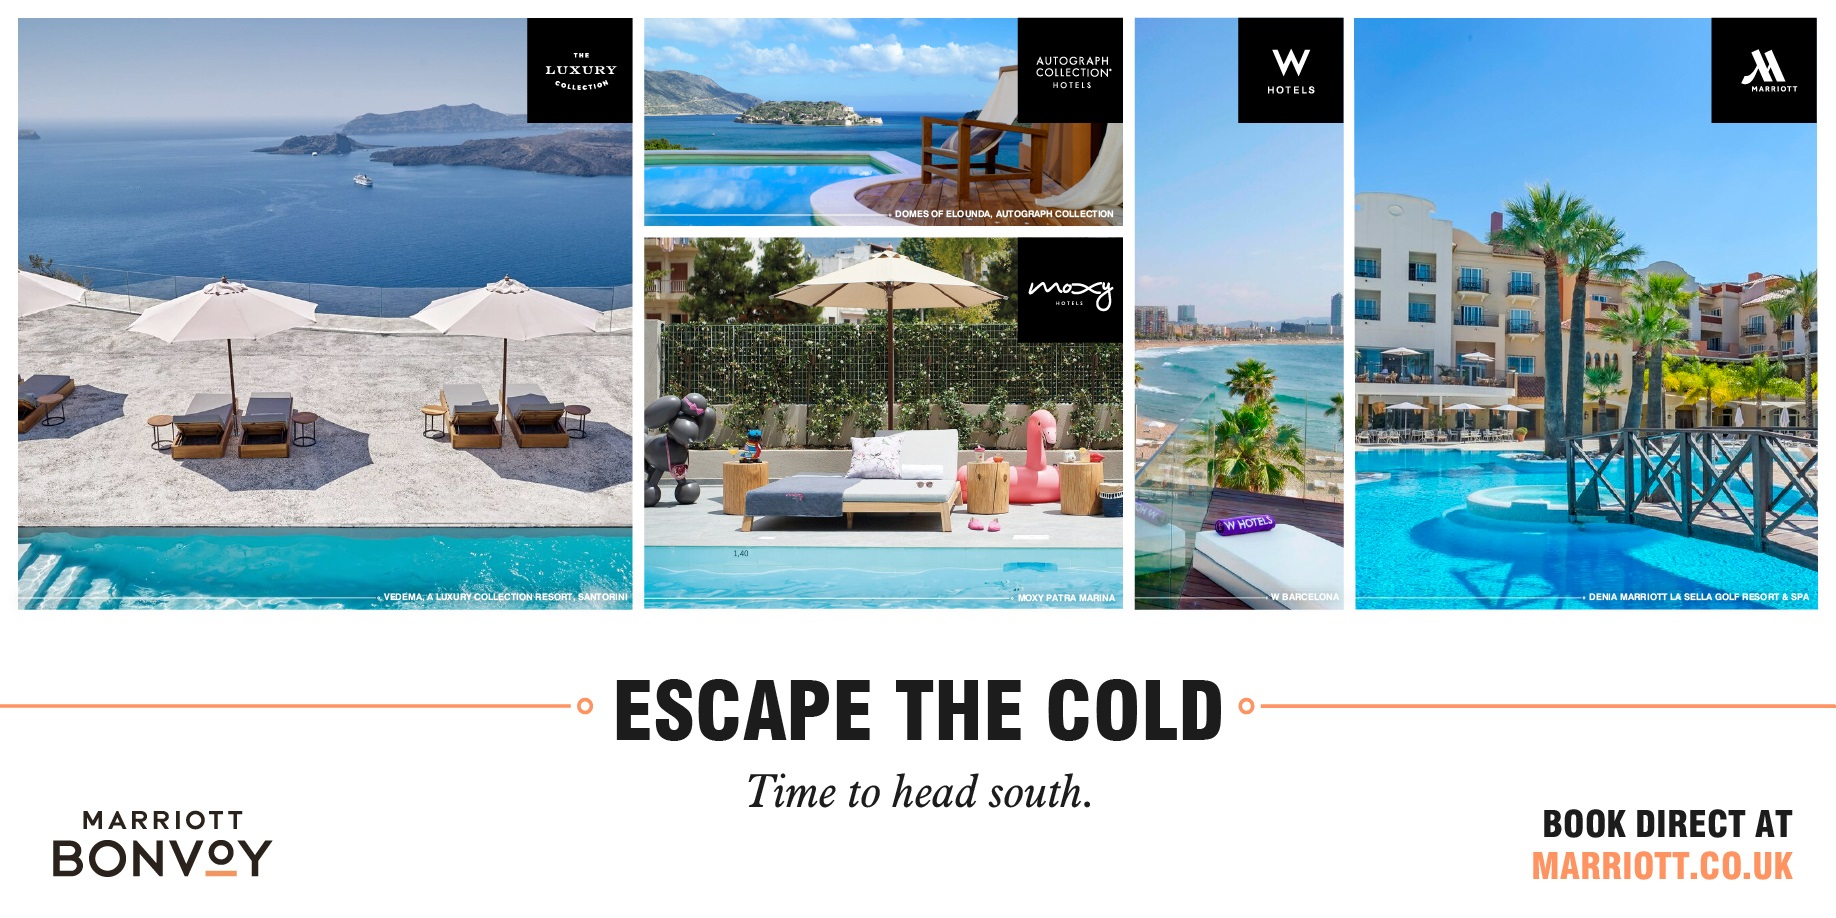 Marriott marketing campaign uses scent triggers to drive bookings | Mobile Marketing Magazine